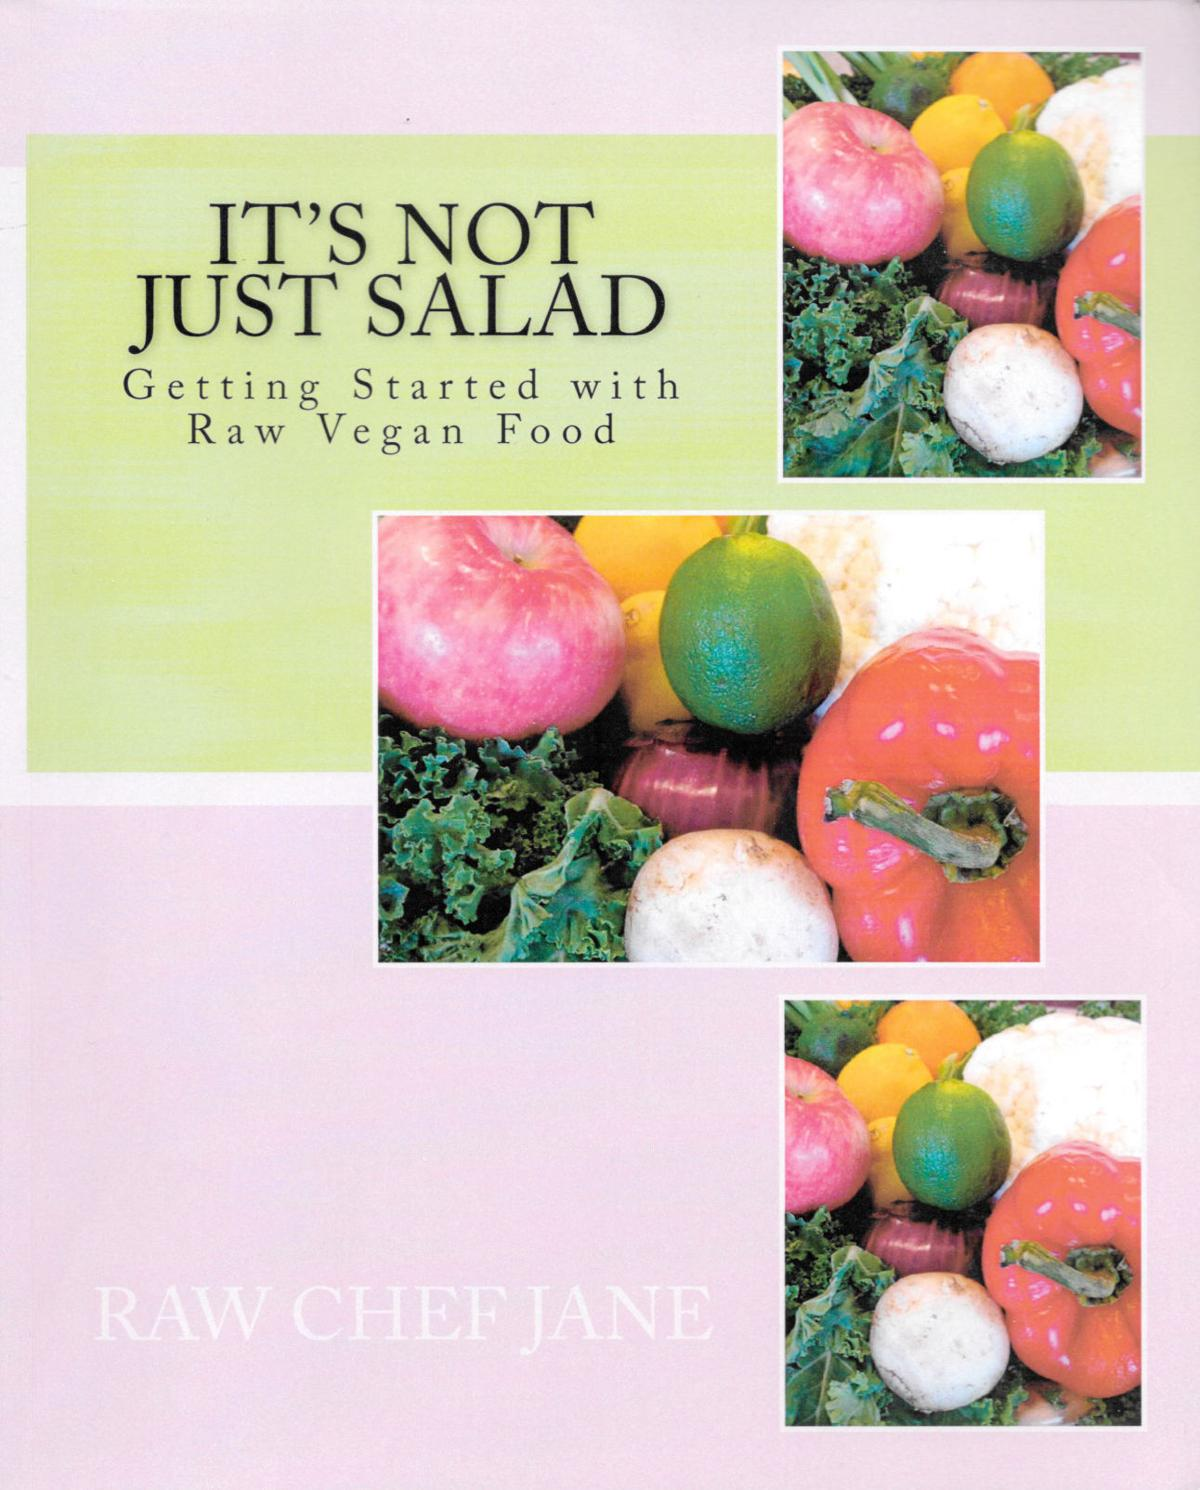 New Cookbook By Raw Chef Jane Shows Eating Healthy Isn't All About Salad